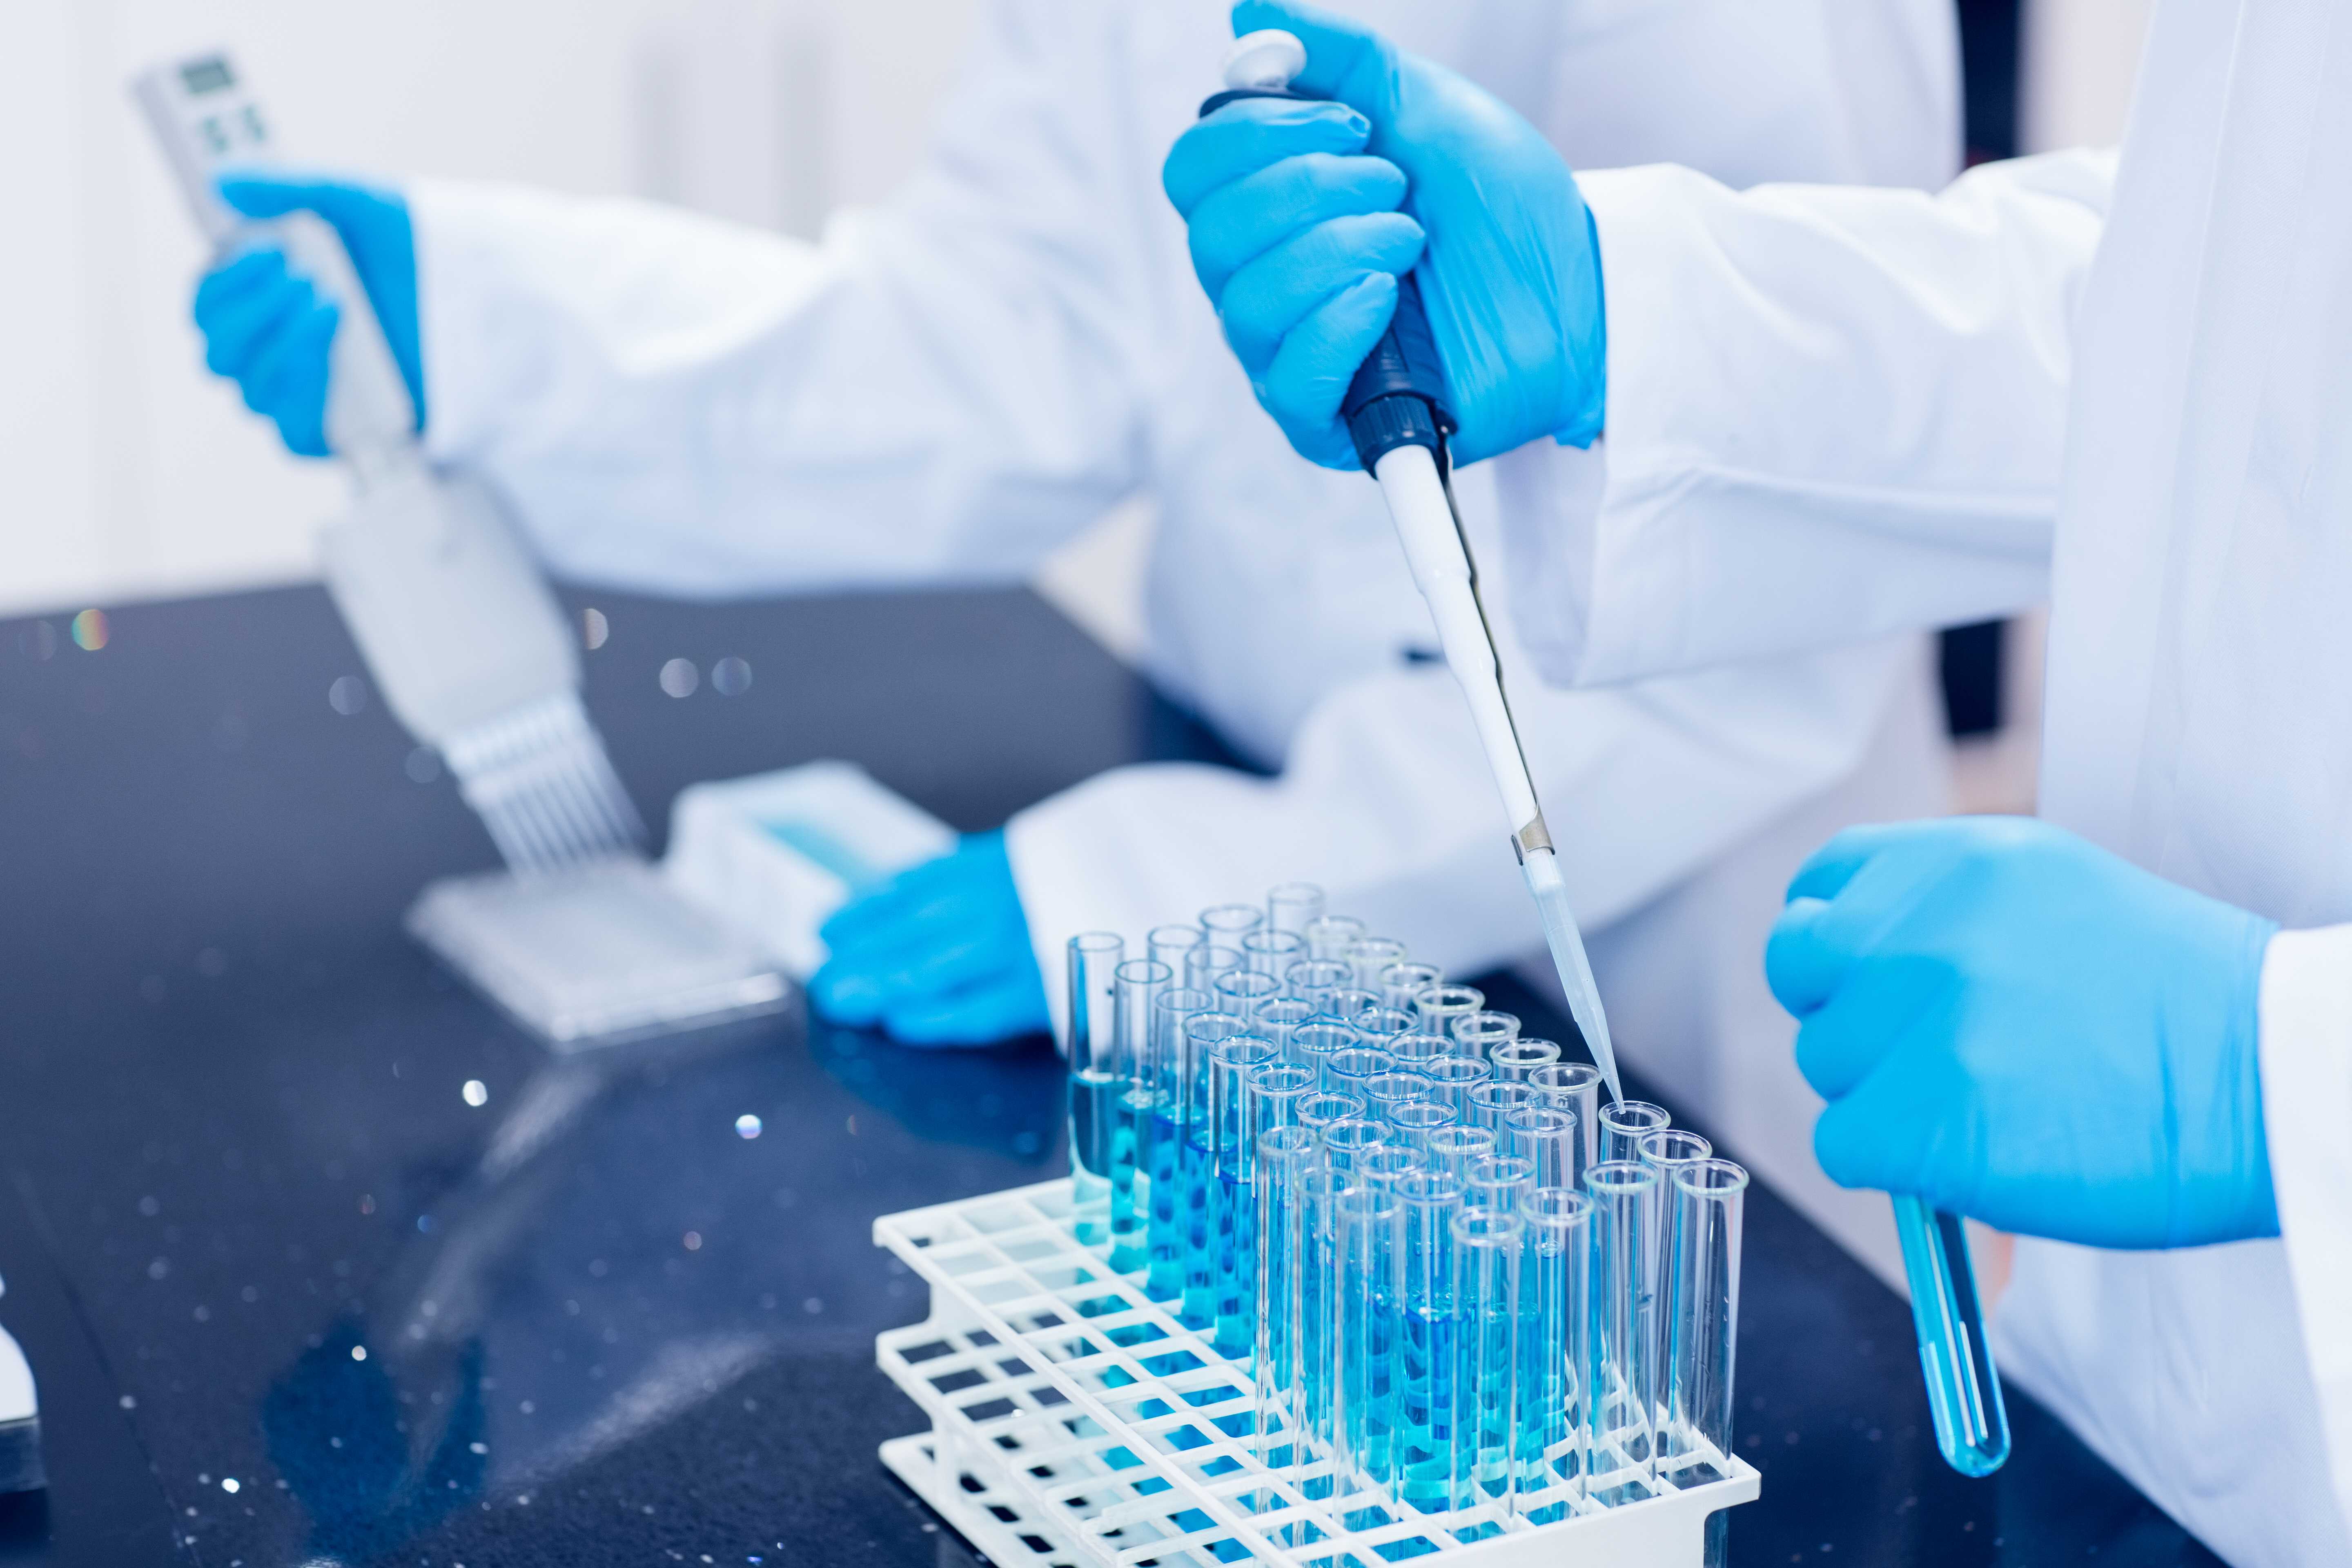 Scientists using pipettes in lab test, life sciences